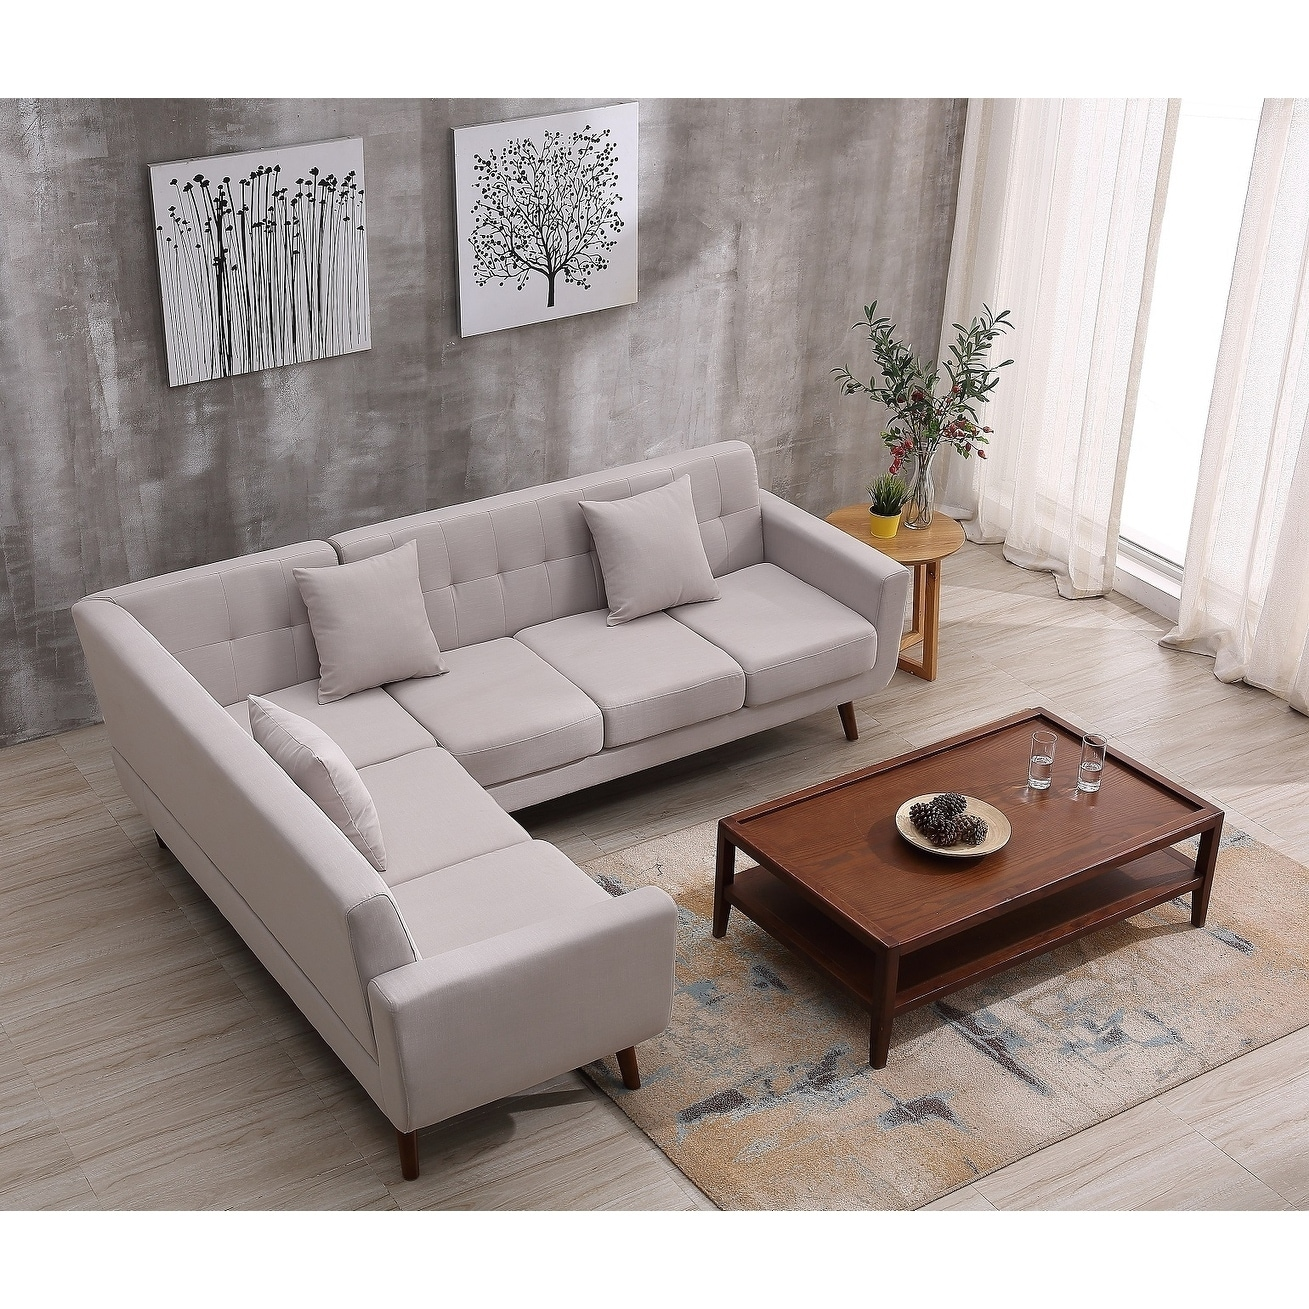 Shop Mid Century Right Facing Tufted Linen Fabric Upholstered L